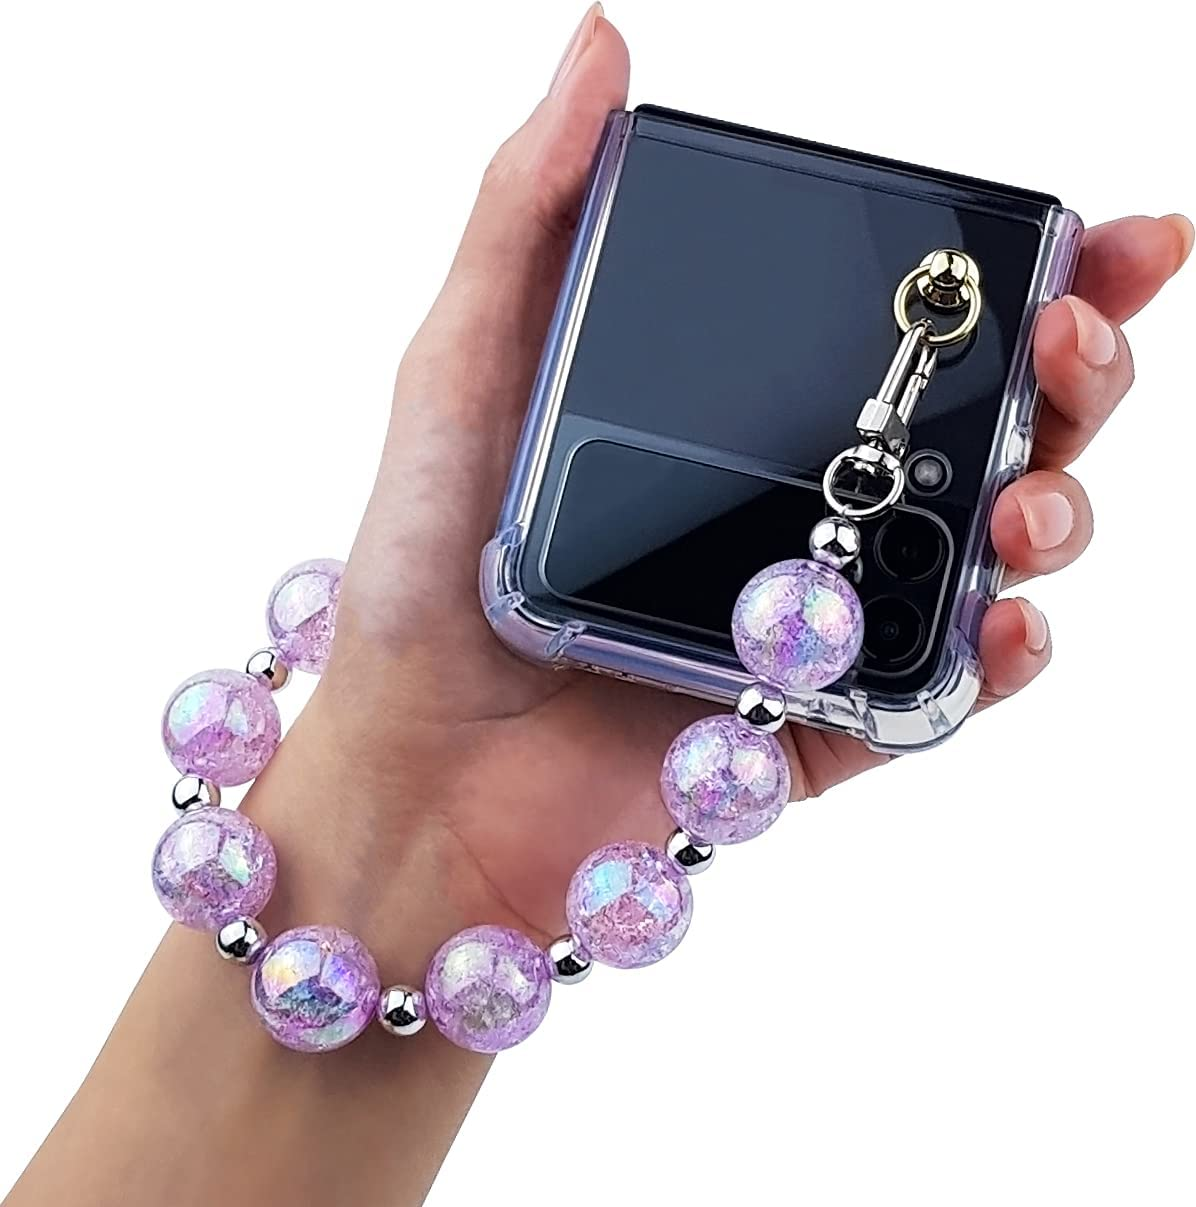 Qoosan Bling Beads Wrist Strap Clear Cover for Samsung Galaxy Z Flip 3 Case 5G (2021) for Women, Iced Purple